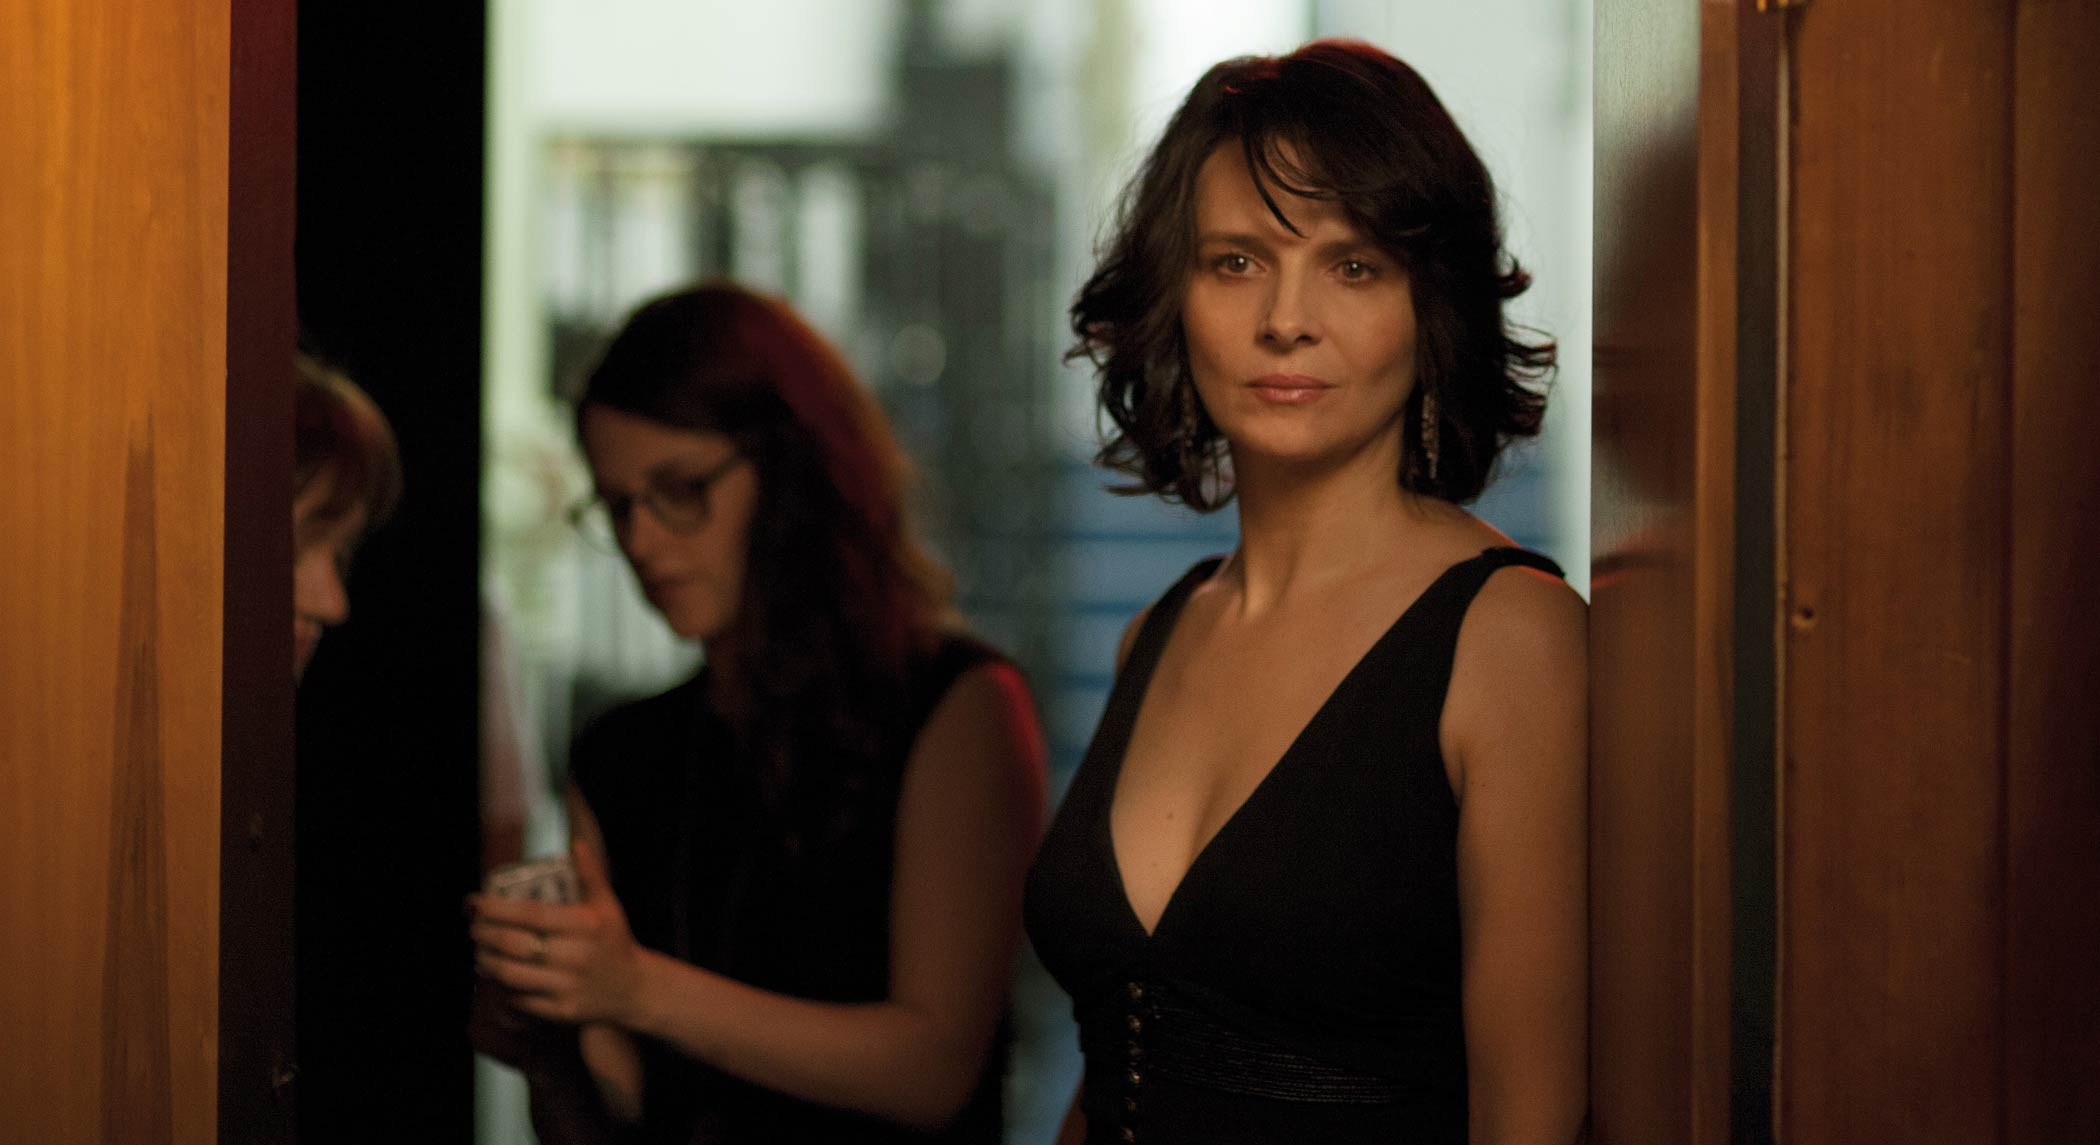 Juliette Binoche stars in Clouds of Sils Maria